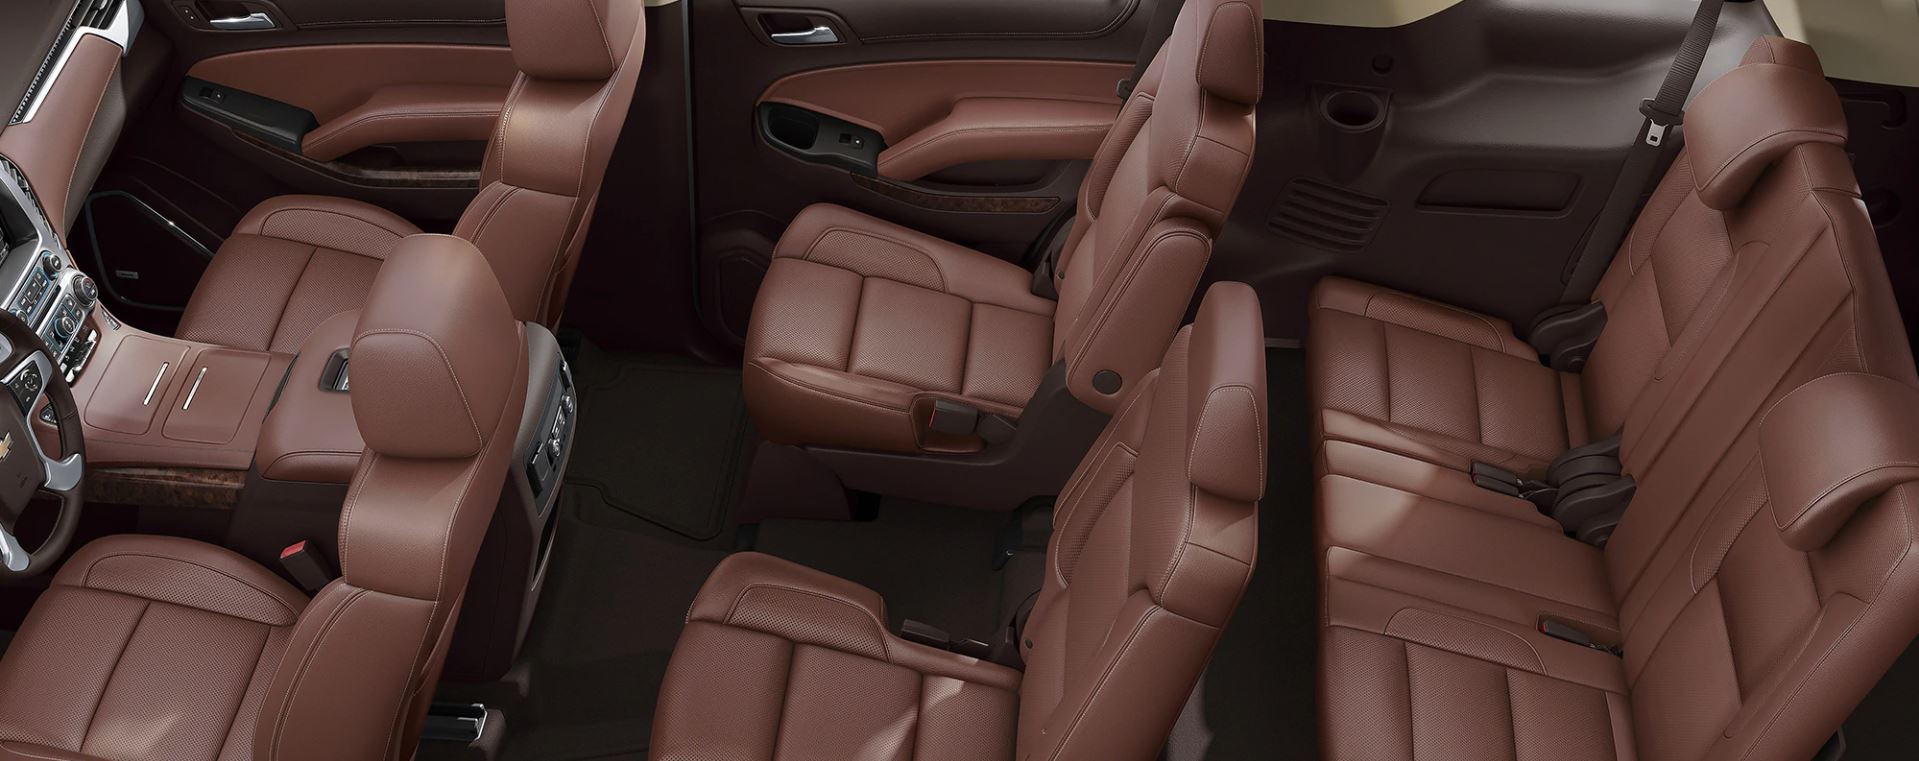 Luxurious Seating in the 2020 Tahoe